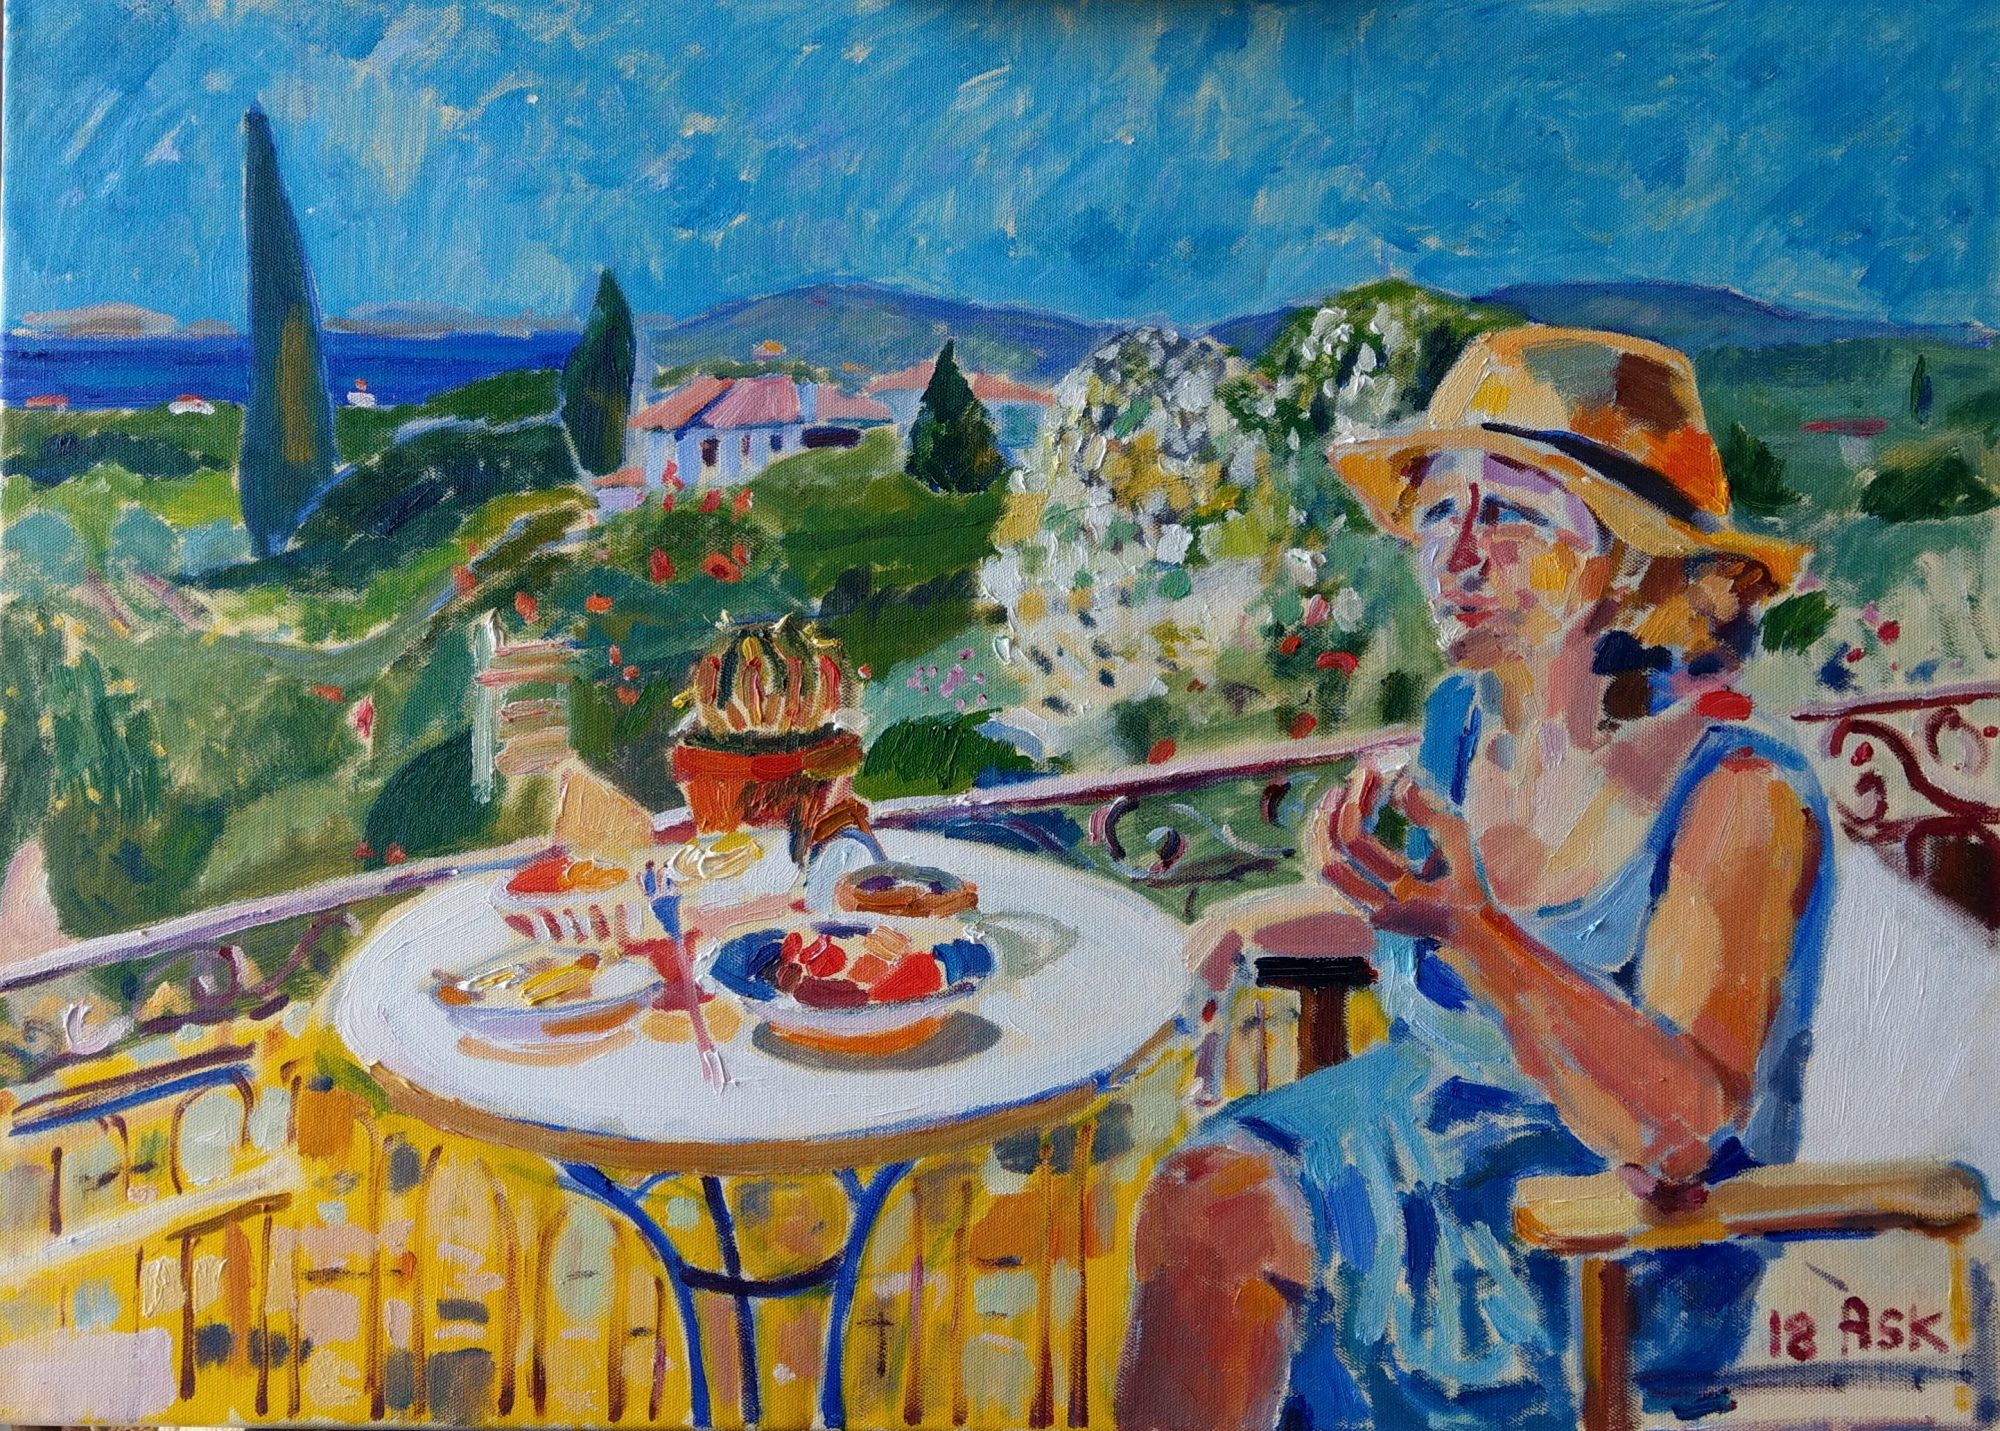 Painting by Ask Oil on Canvass 2018 Chios Elli having breakfast on her balcony  Approximately 800 x 600 mm